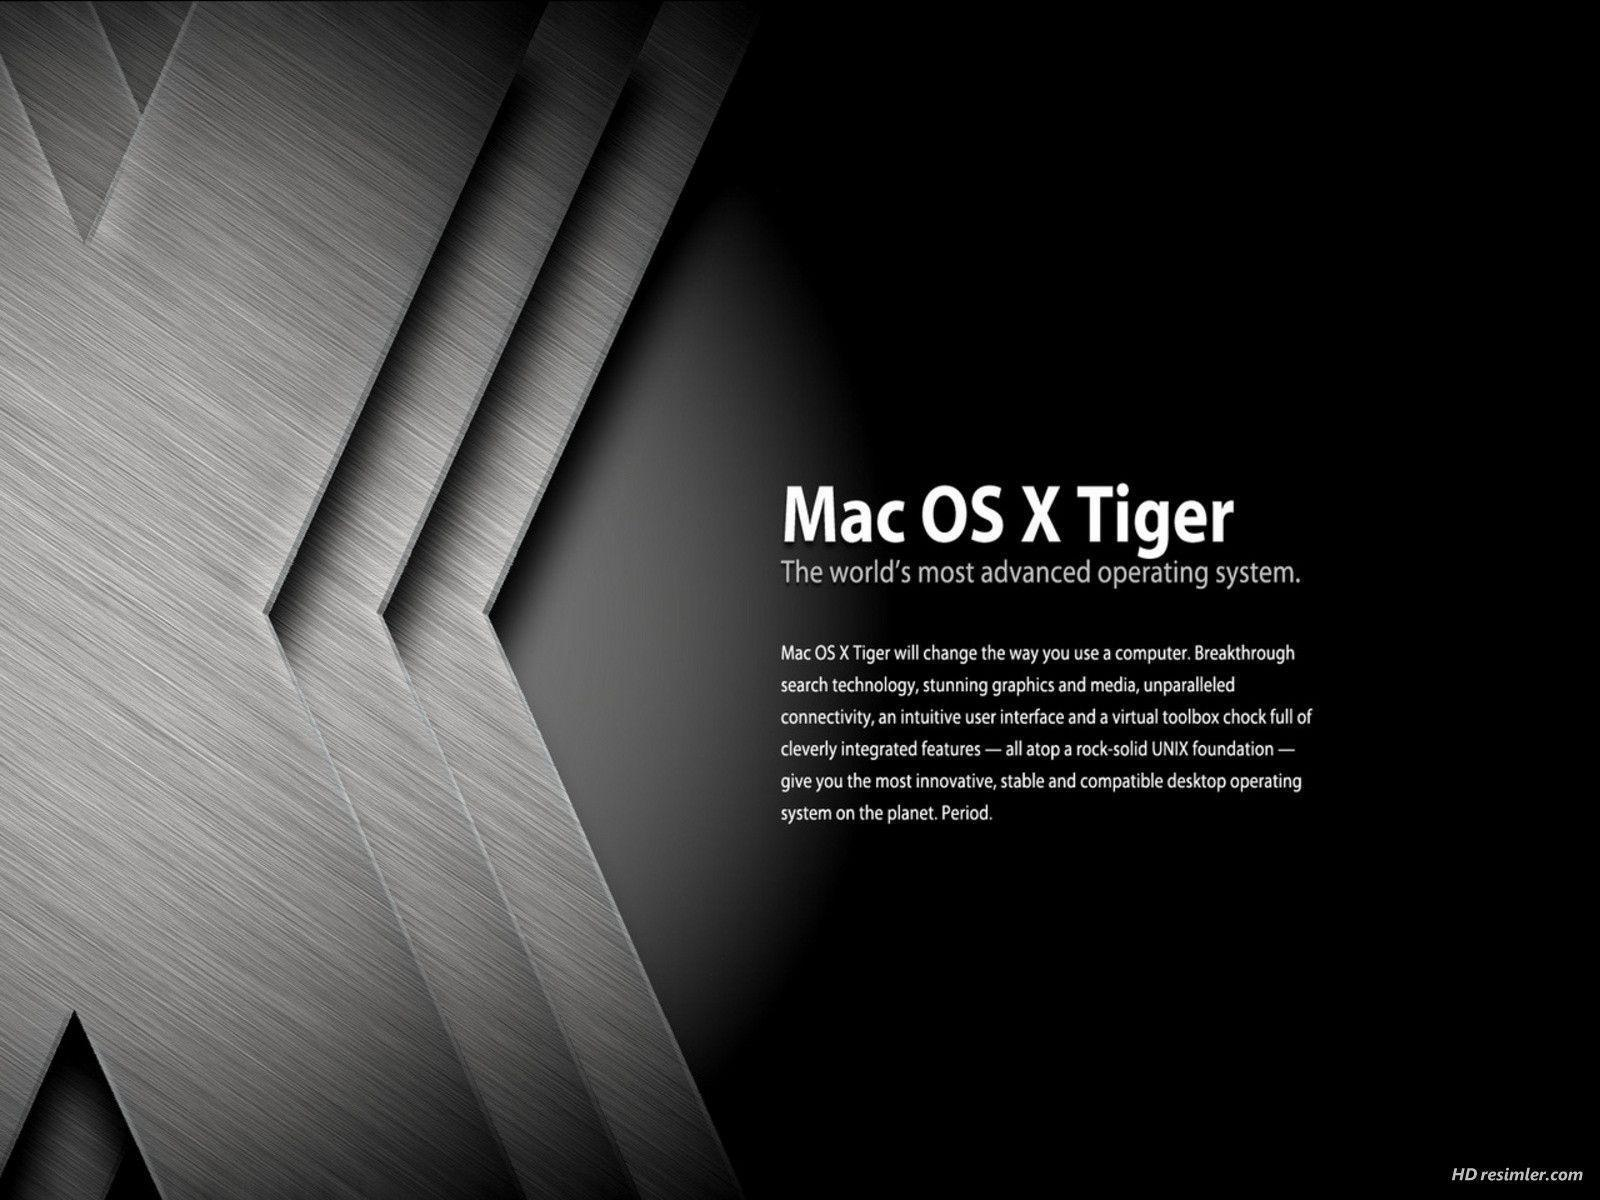 Wallpapers Mac Os X Tiger